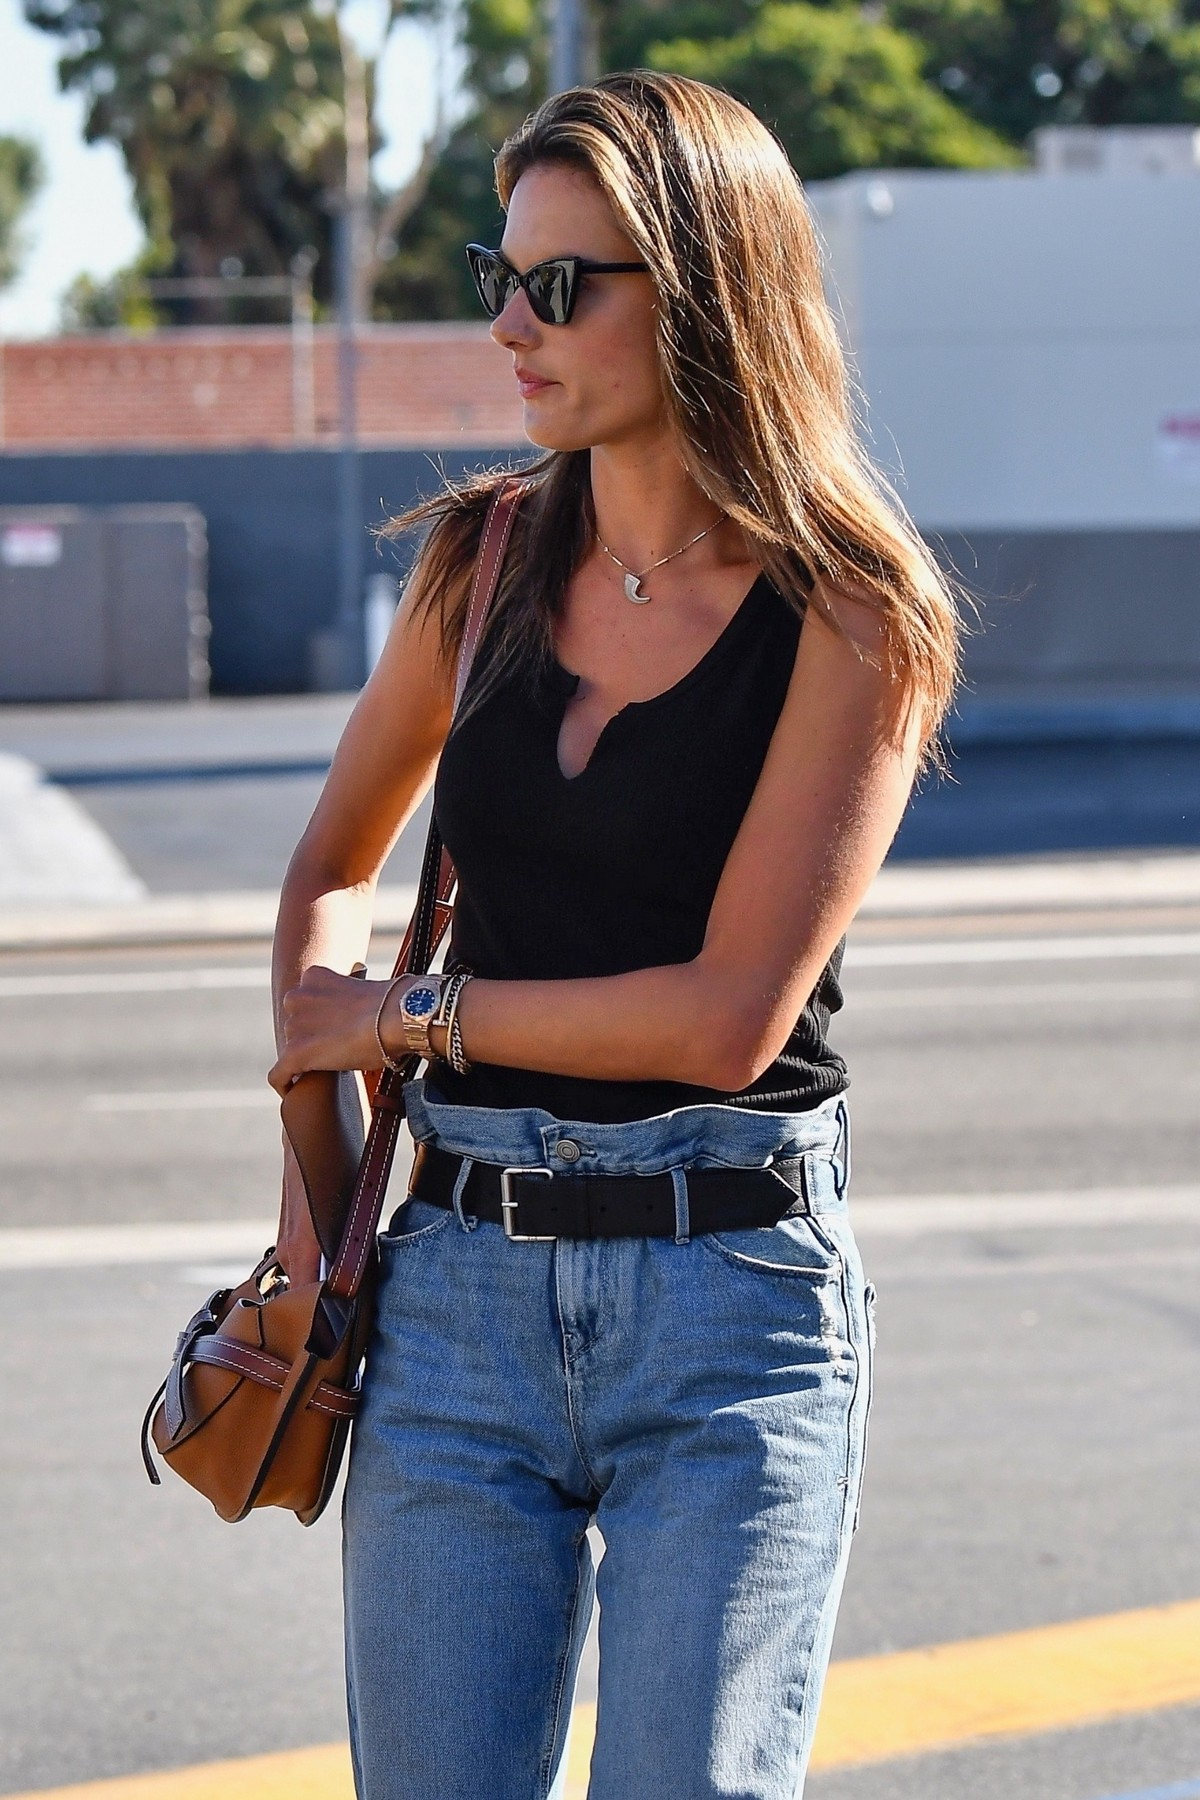 Alessandra Ambrosio in Black Top and Blue Jeans out in Los Angeles 2019/11/18 31